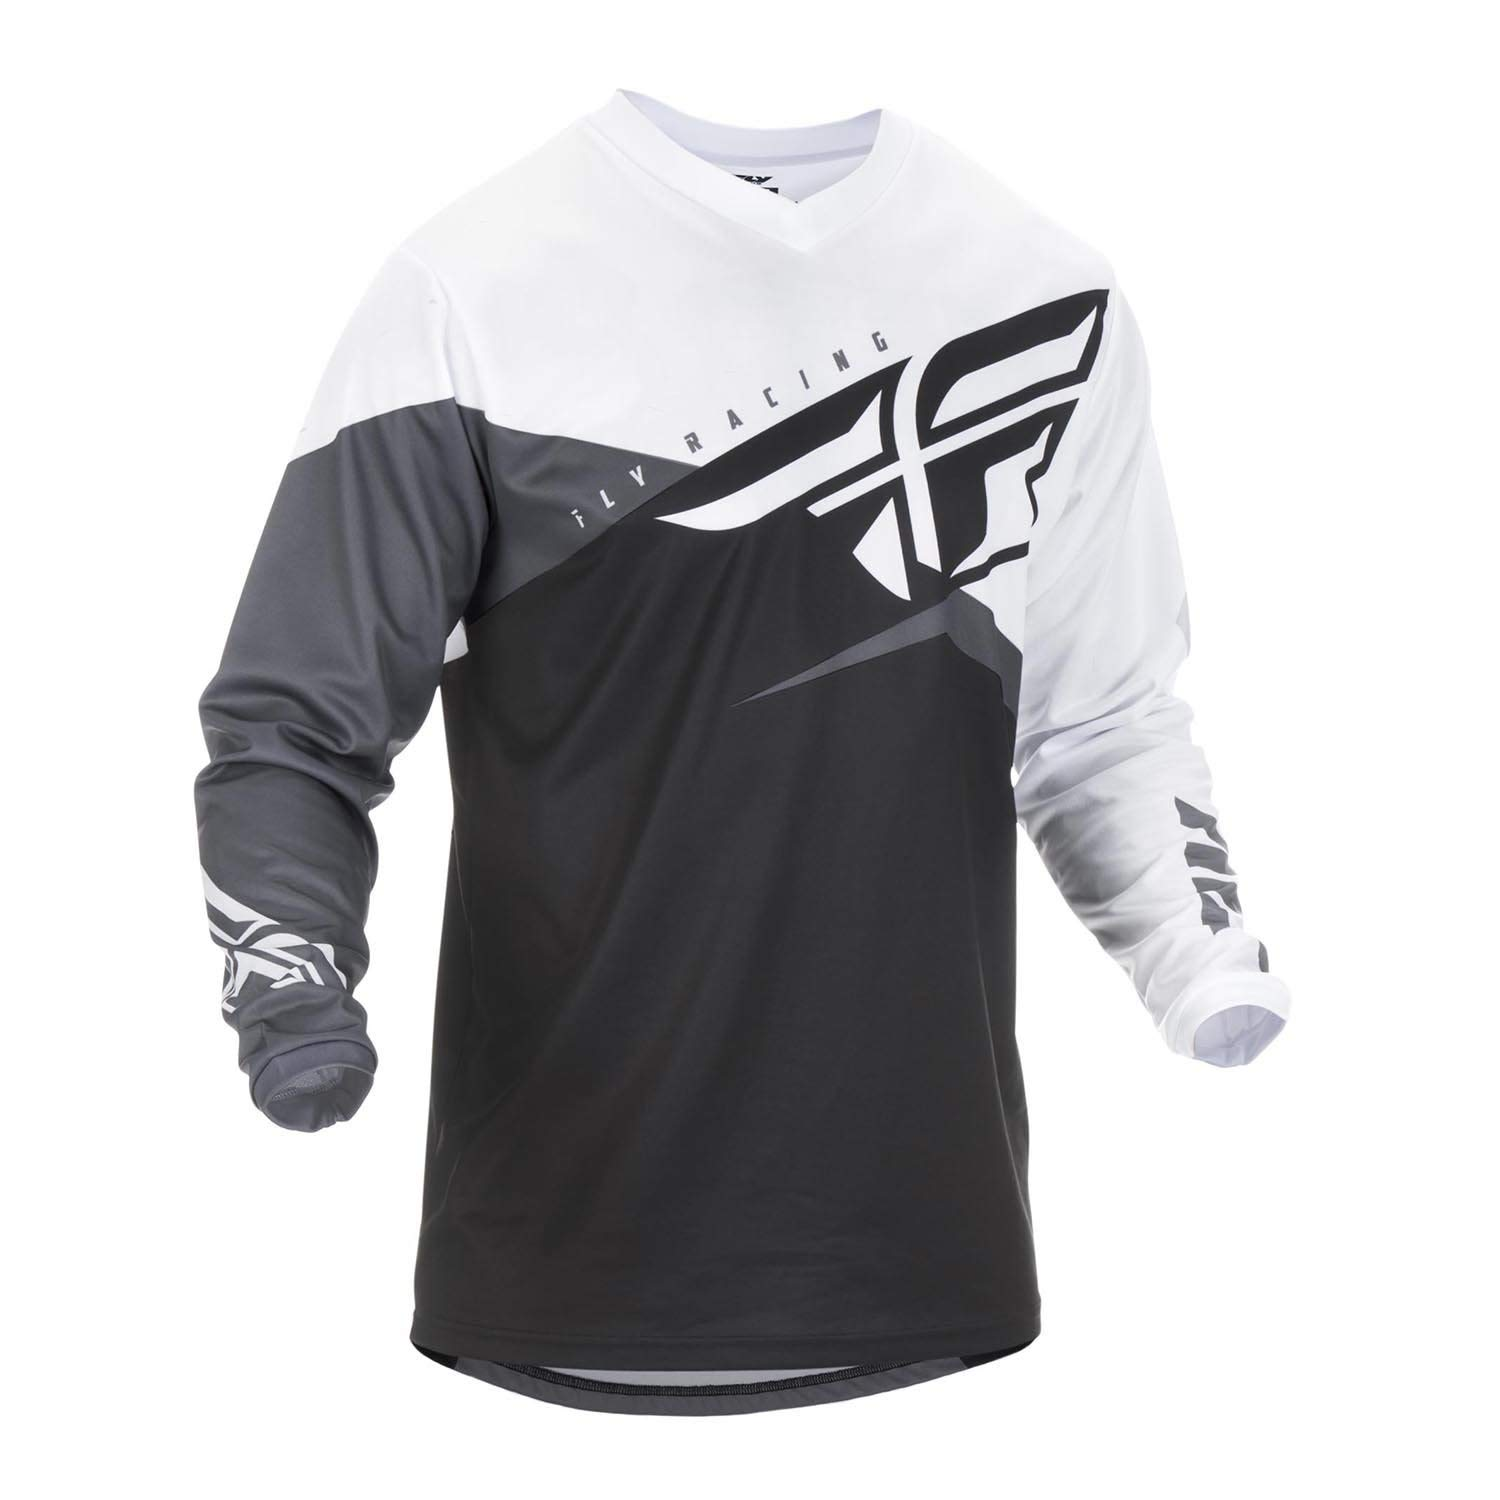 Fly Racing 2019 F-16 Jersey (Medium) (Black/White/Grey) by Fly Racing